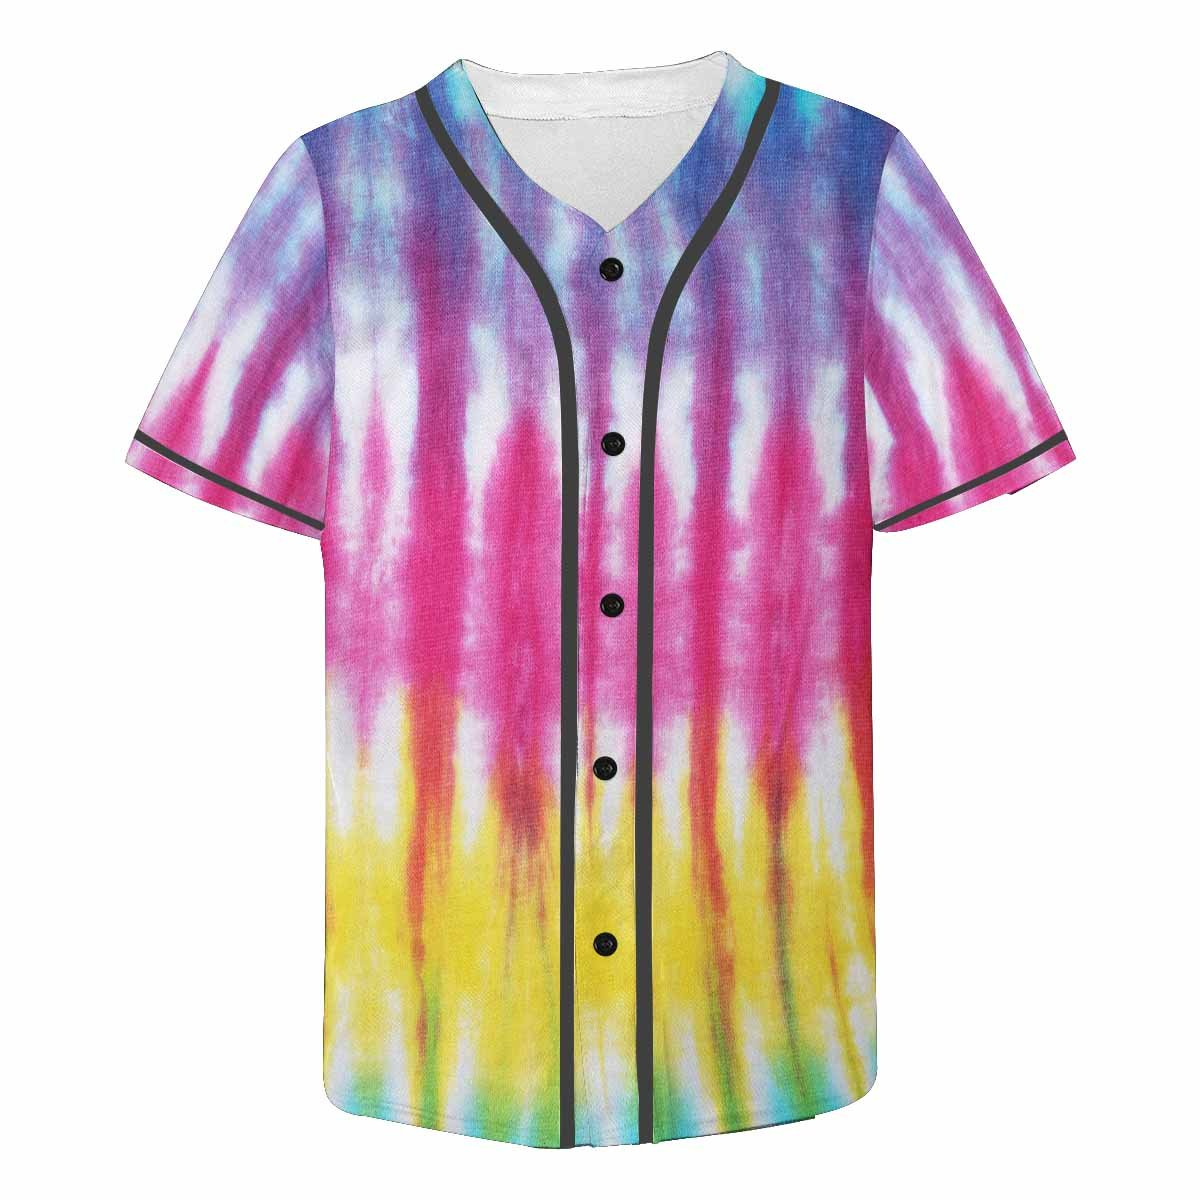 INTERESTPRINT Mens Button Down Baseball Jersey Tie Dyed Fabric Background